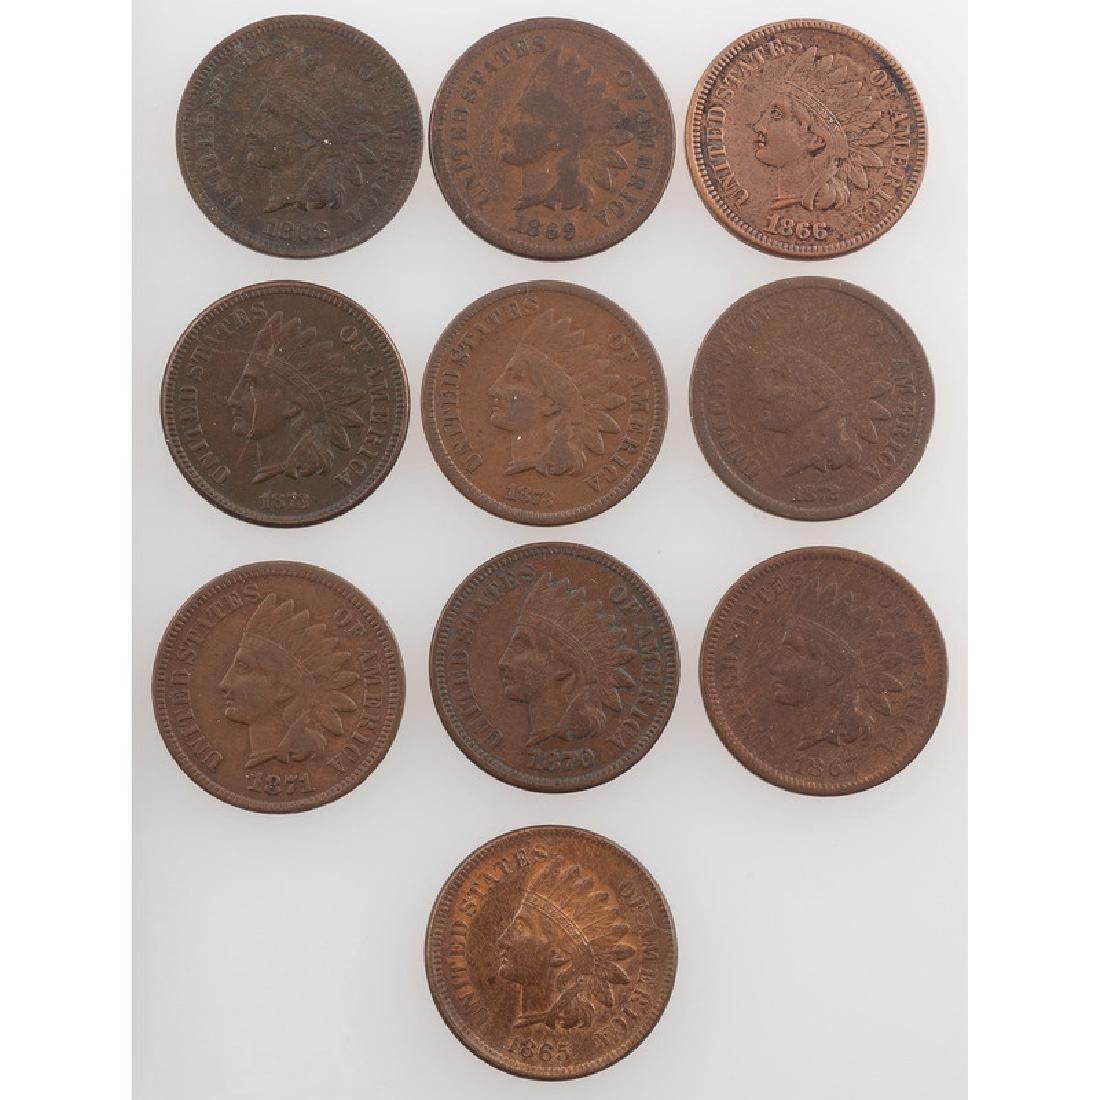 United States Indian Head Cents 1865-1873